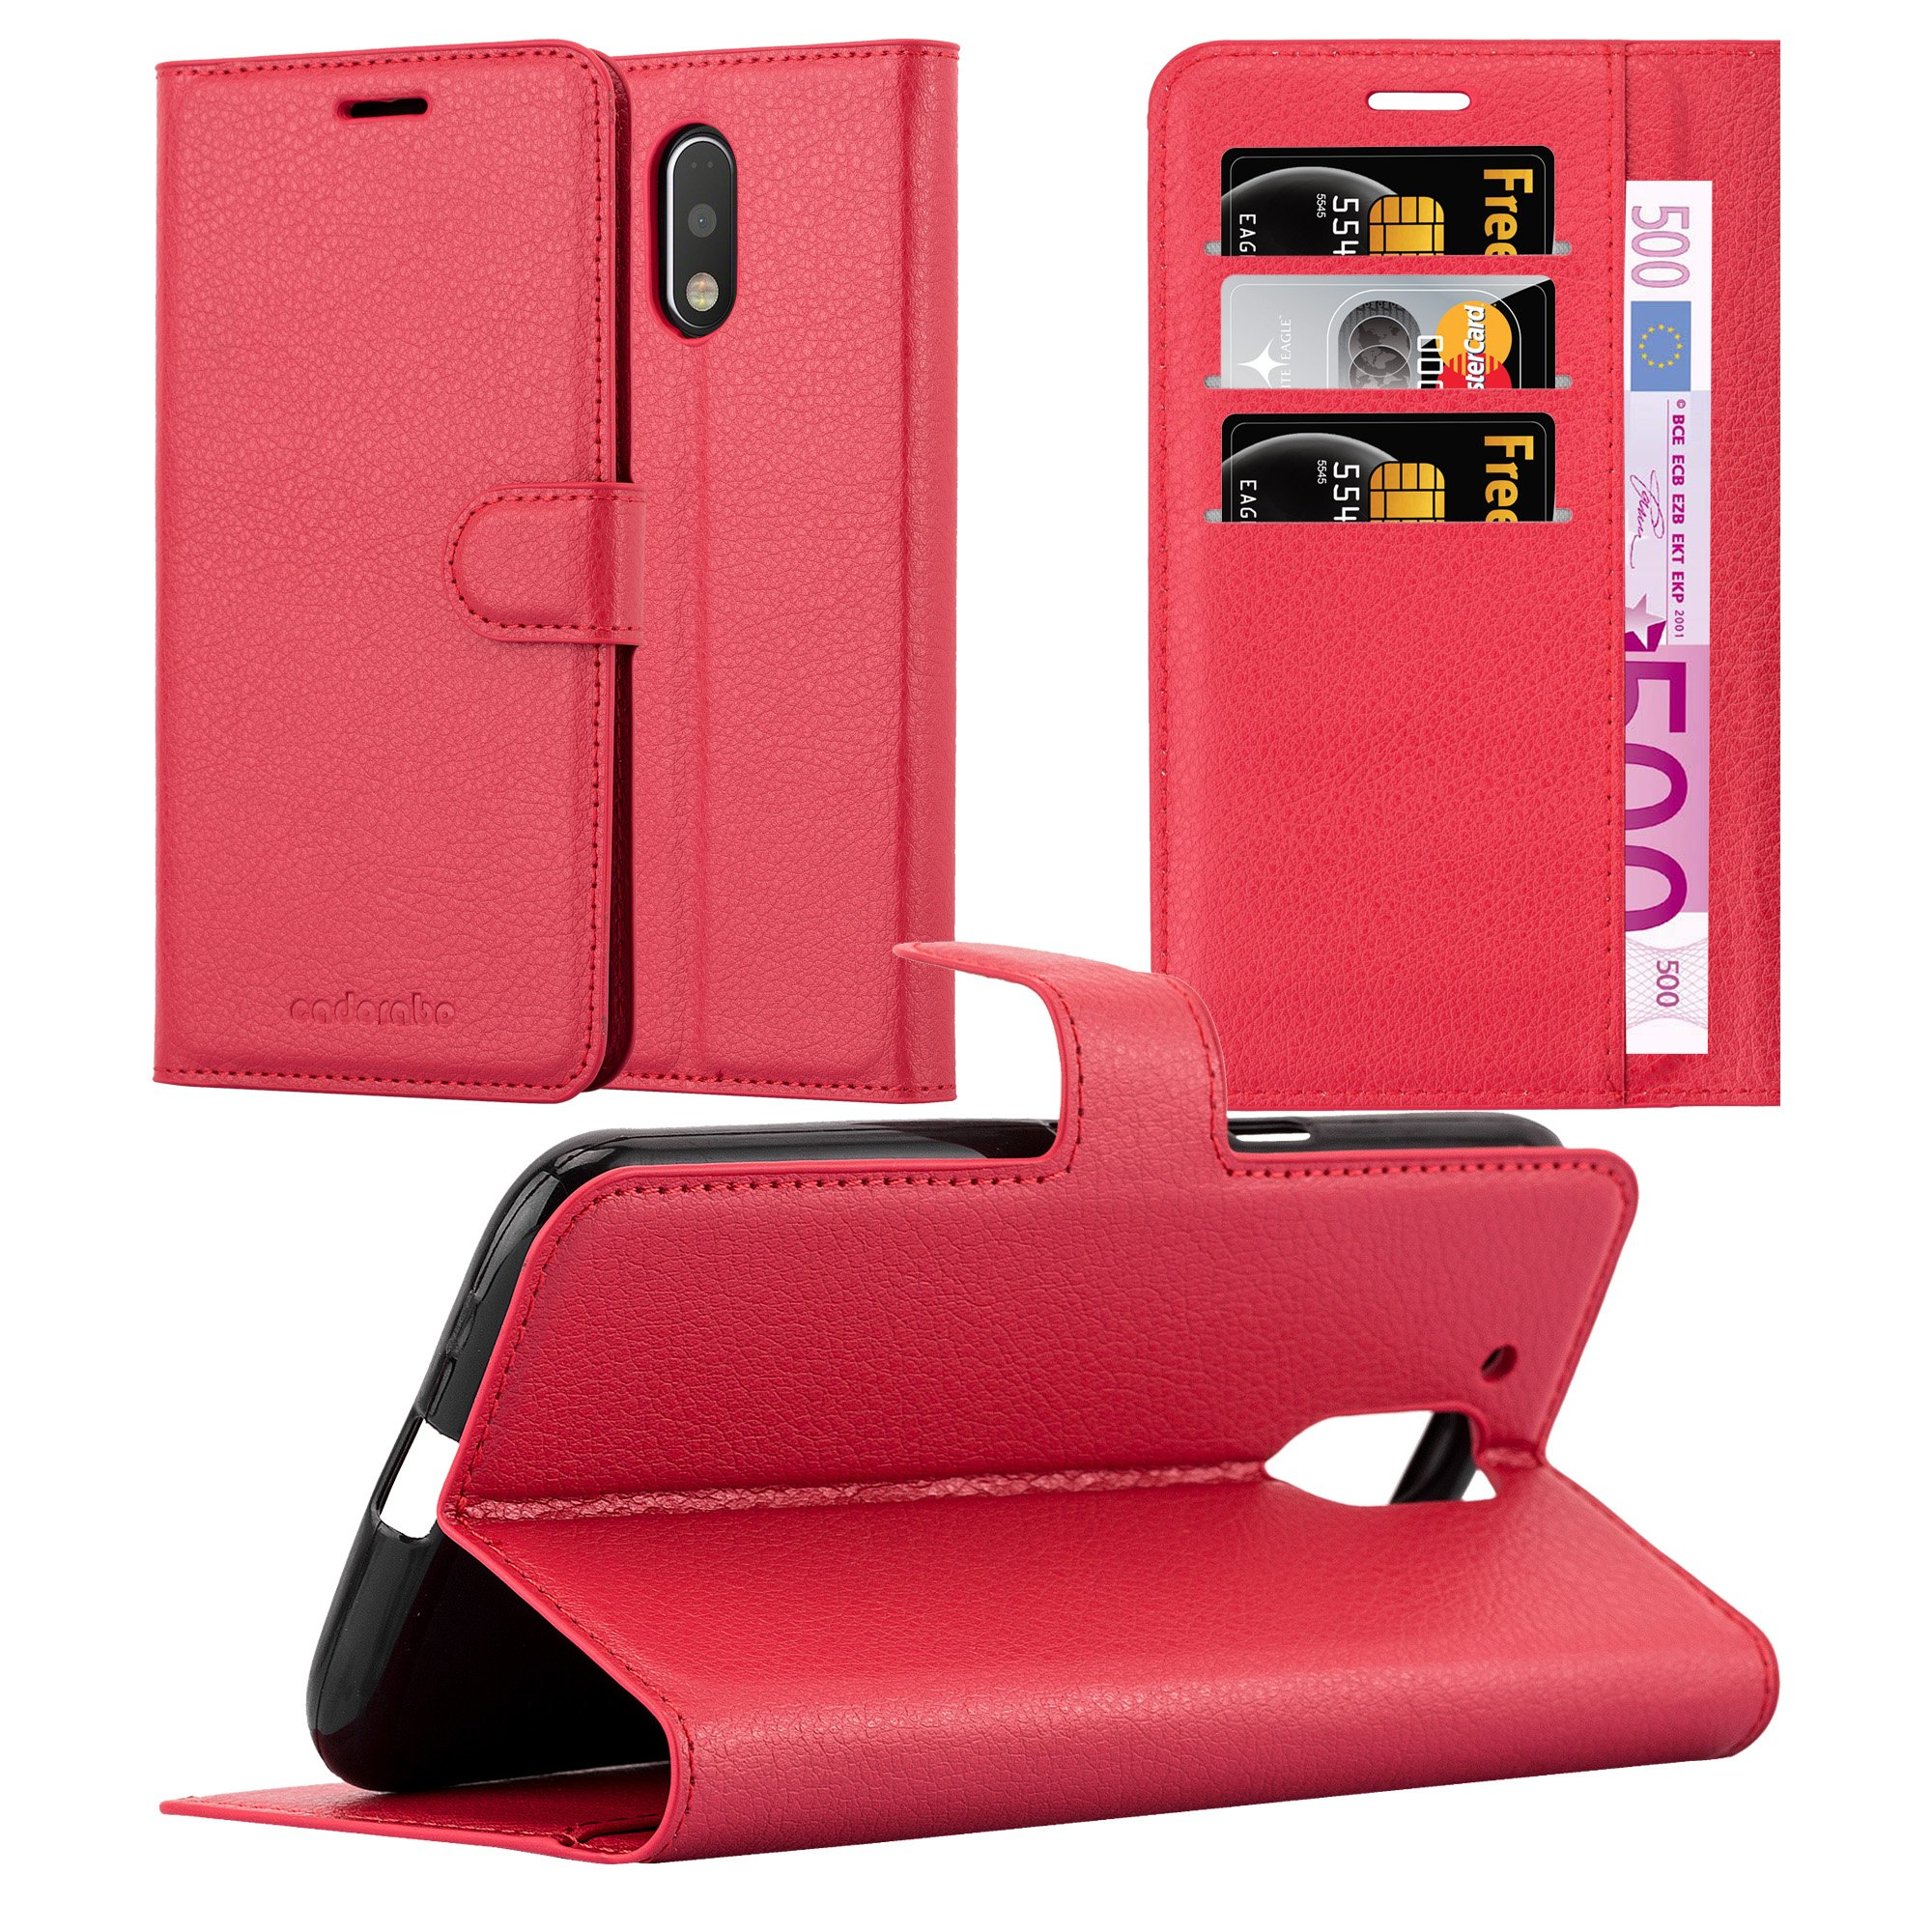 Cadorabo Case Works with Lenovo (Motorola) Moto G4 / G4 Plus Book Case in Candy Apple RED – with Magnetic Closure, Stand Function and Card Slot – Wallet Case Etui Cover PU Leather Flip